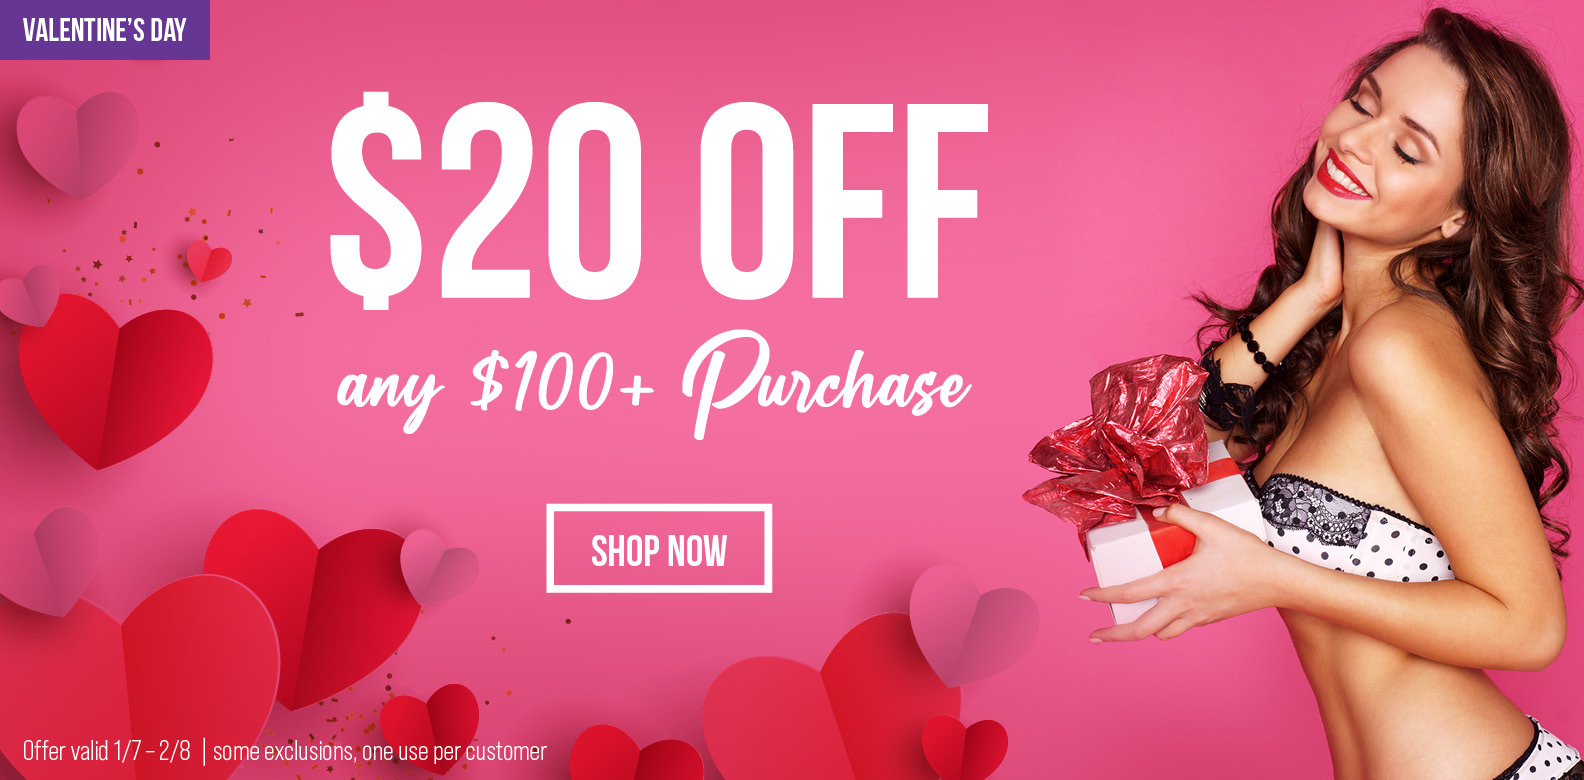 Take $20 off every order over $100!